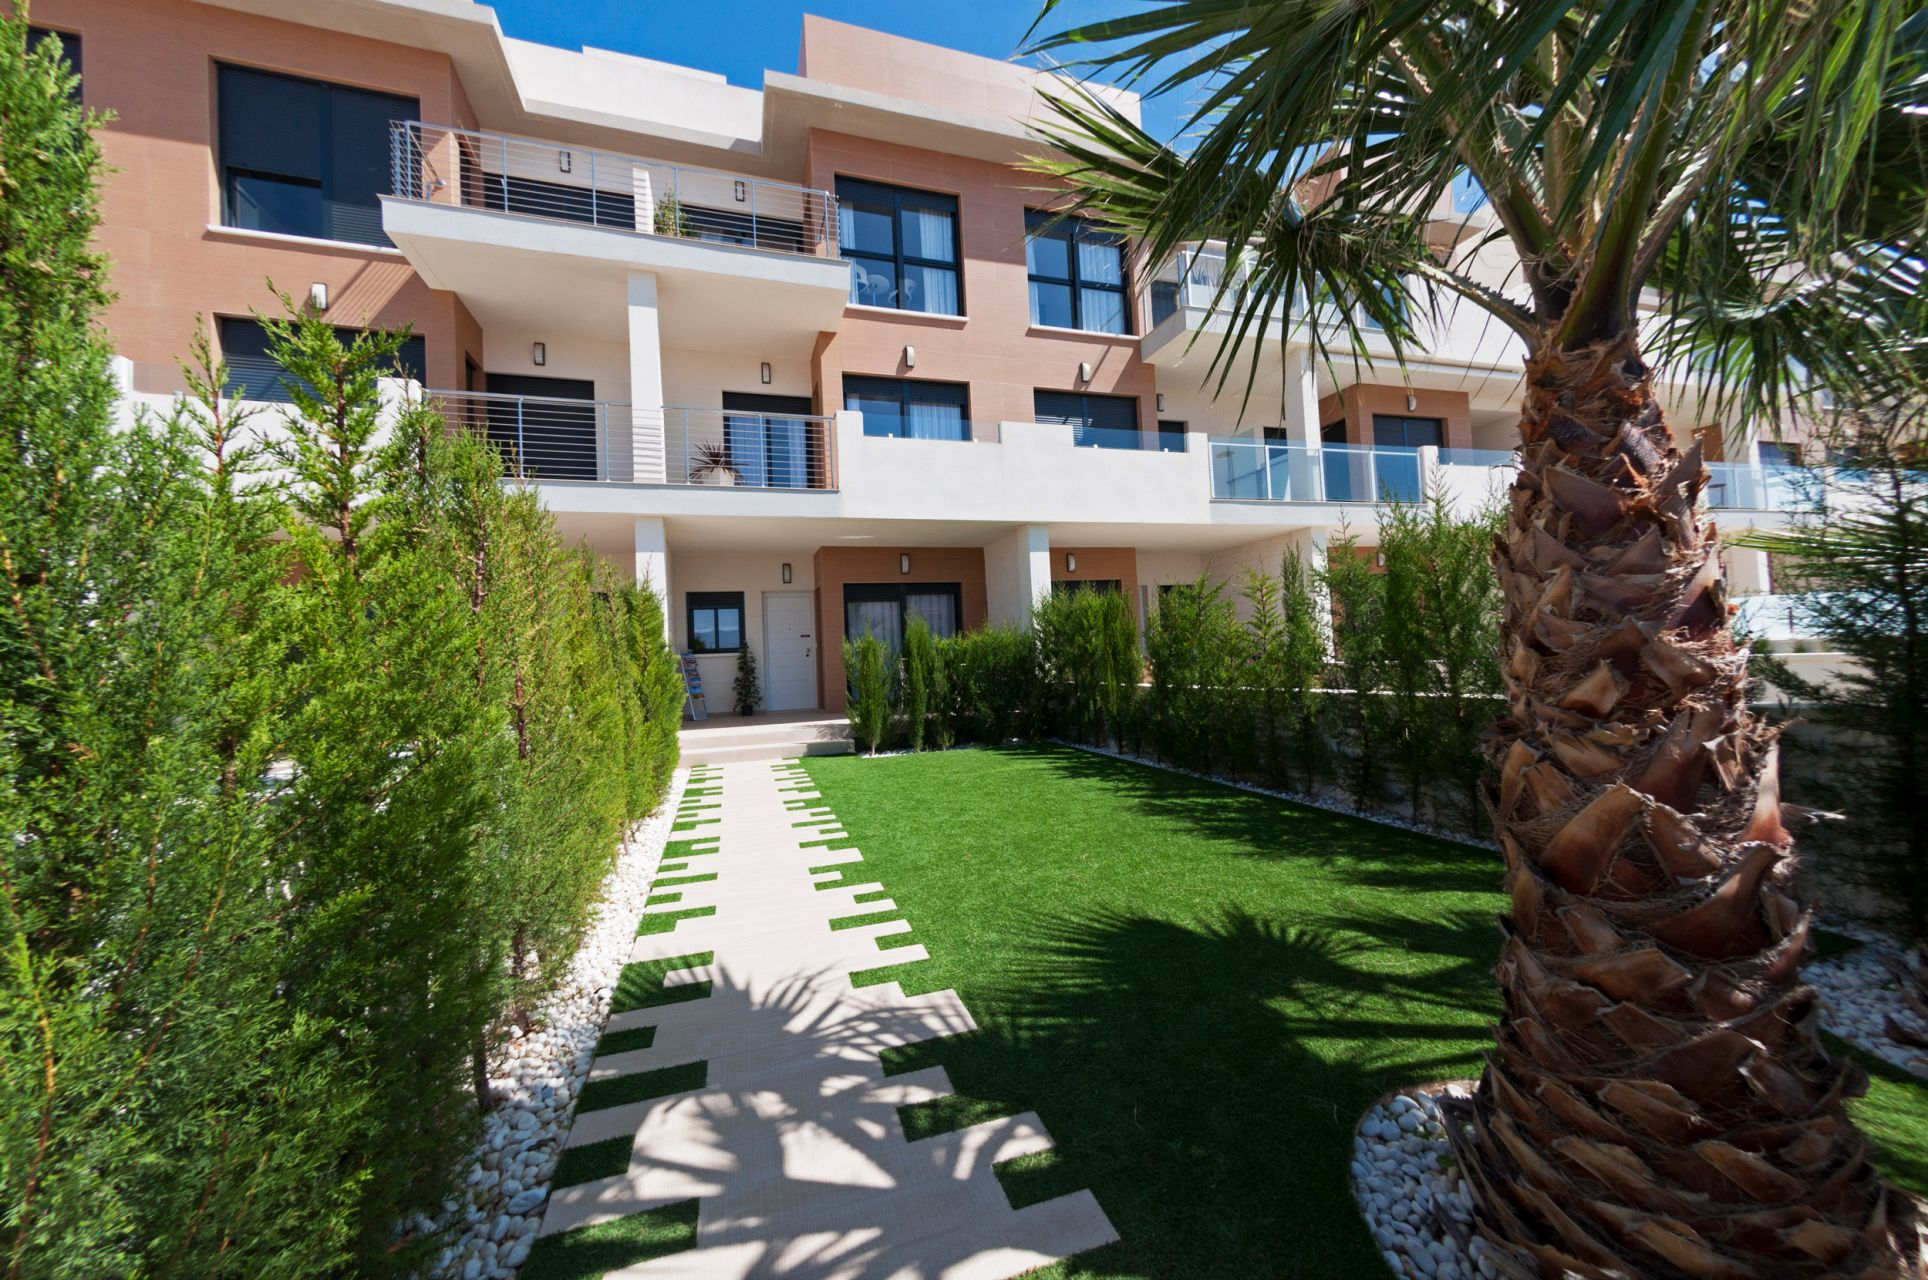 Apartments in La Zenia 3